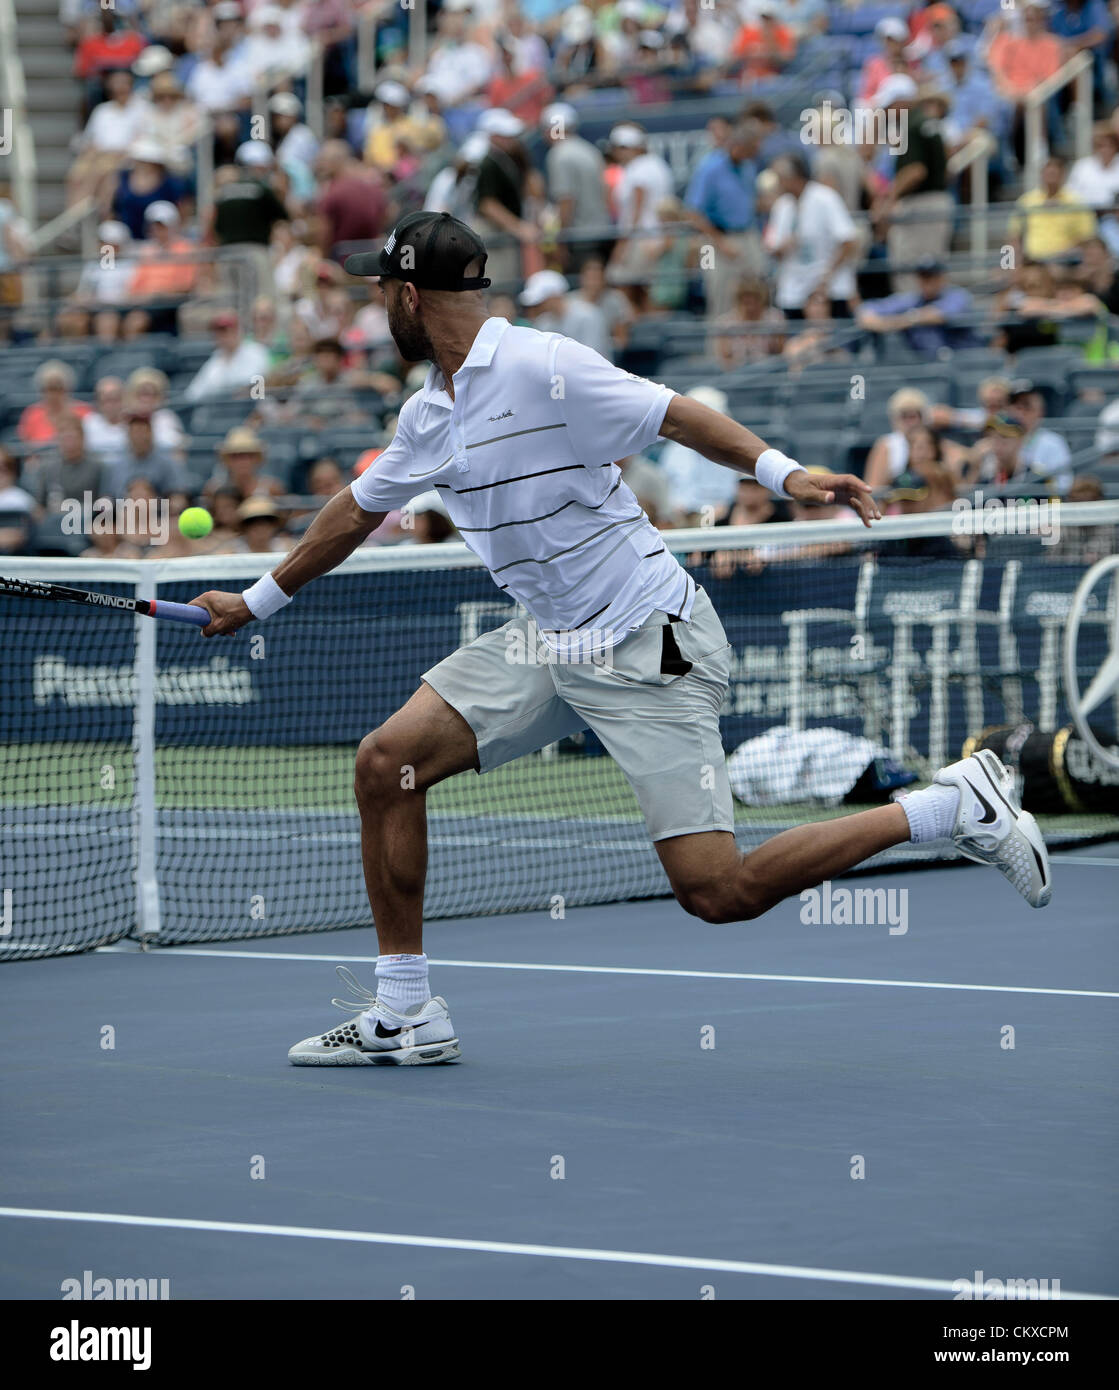 27th Aug 2012. 27.08.2012. New York, USA. James Blake from The United States (USA) in action against Slovakia's - Stock Image